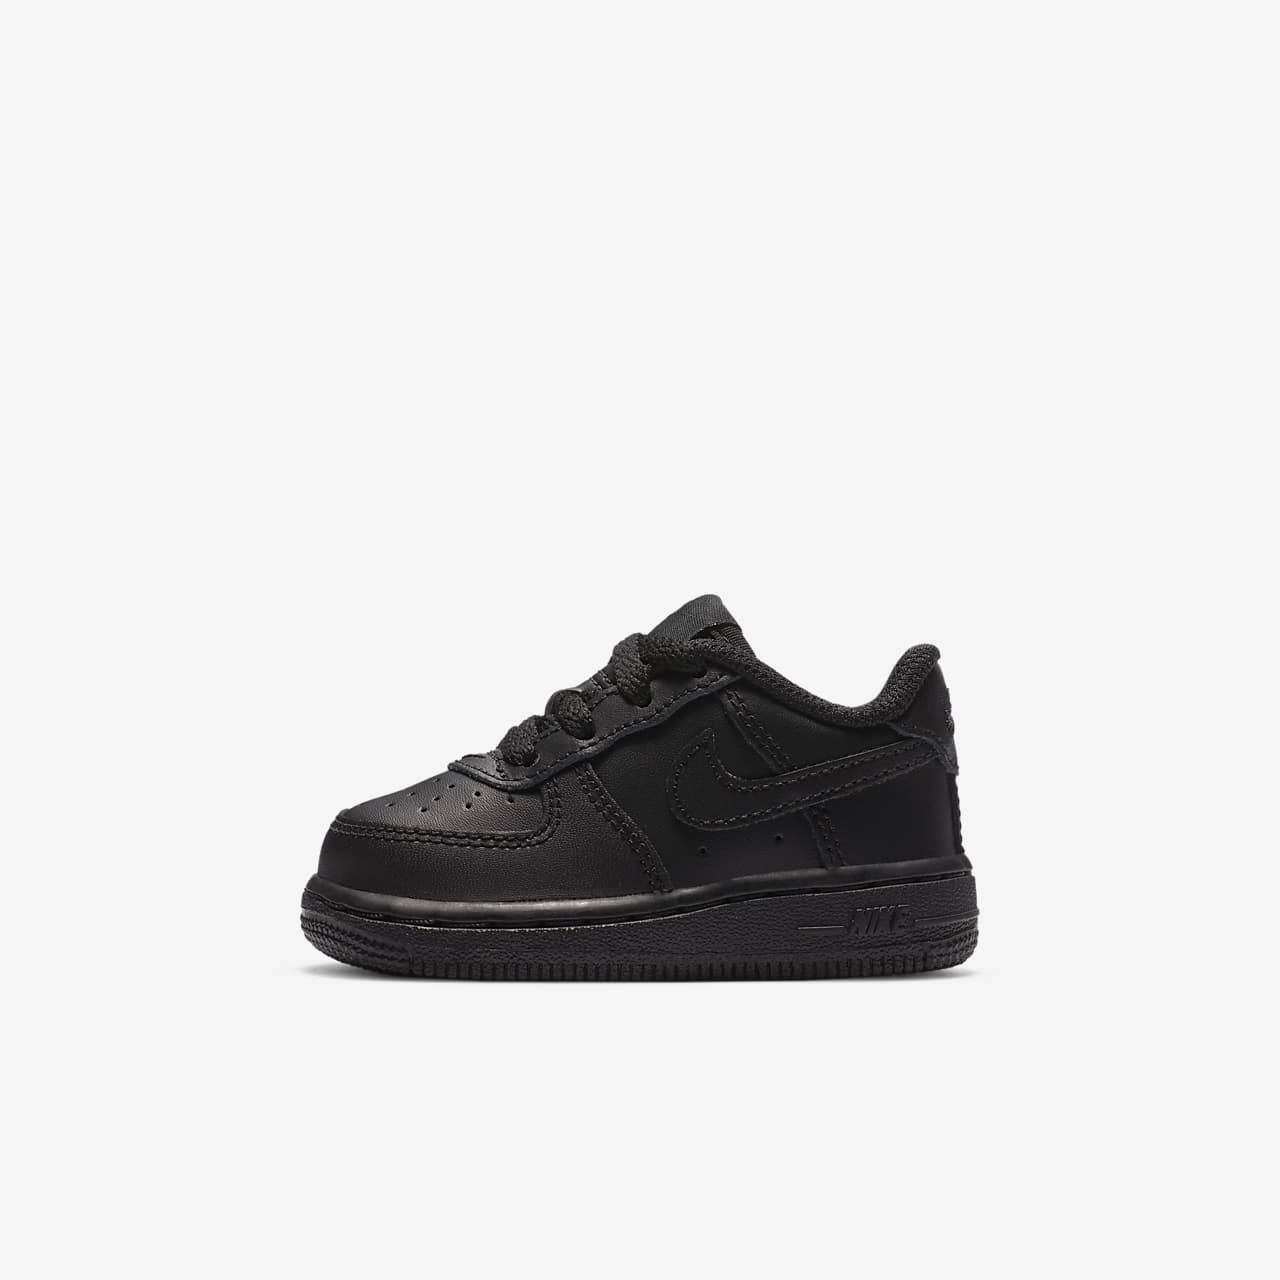 ... Nike Air Force 1 06 Infant/Toddler Shoe